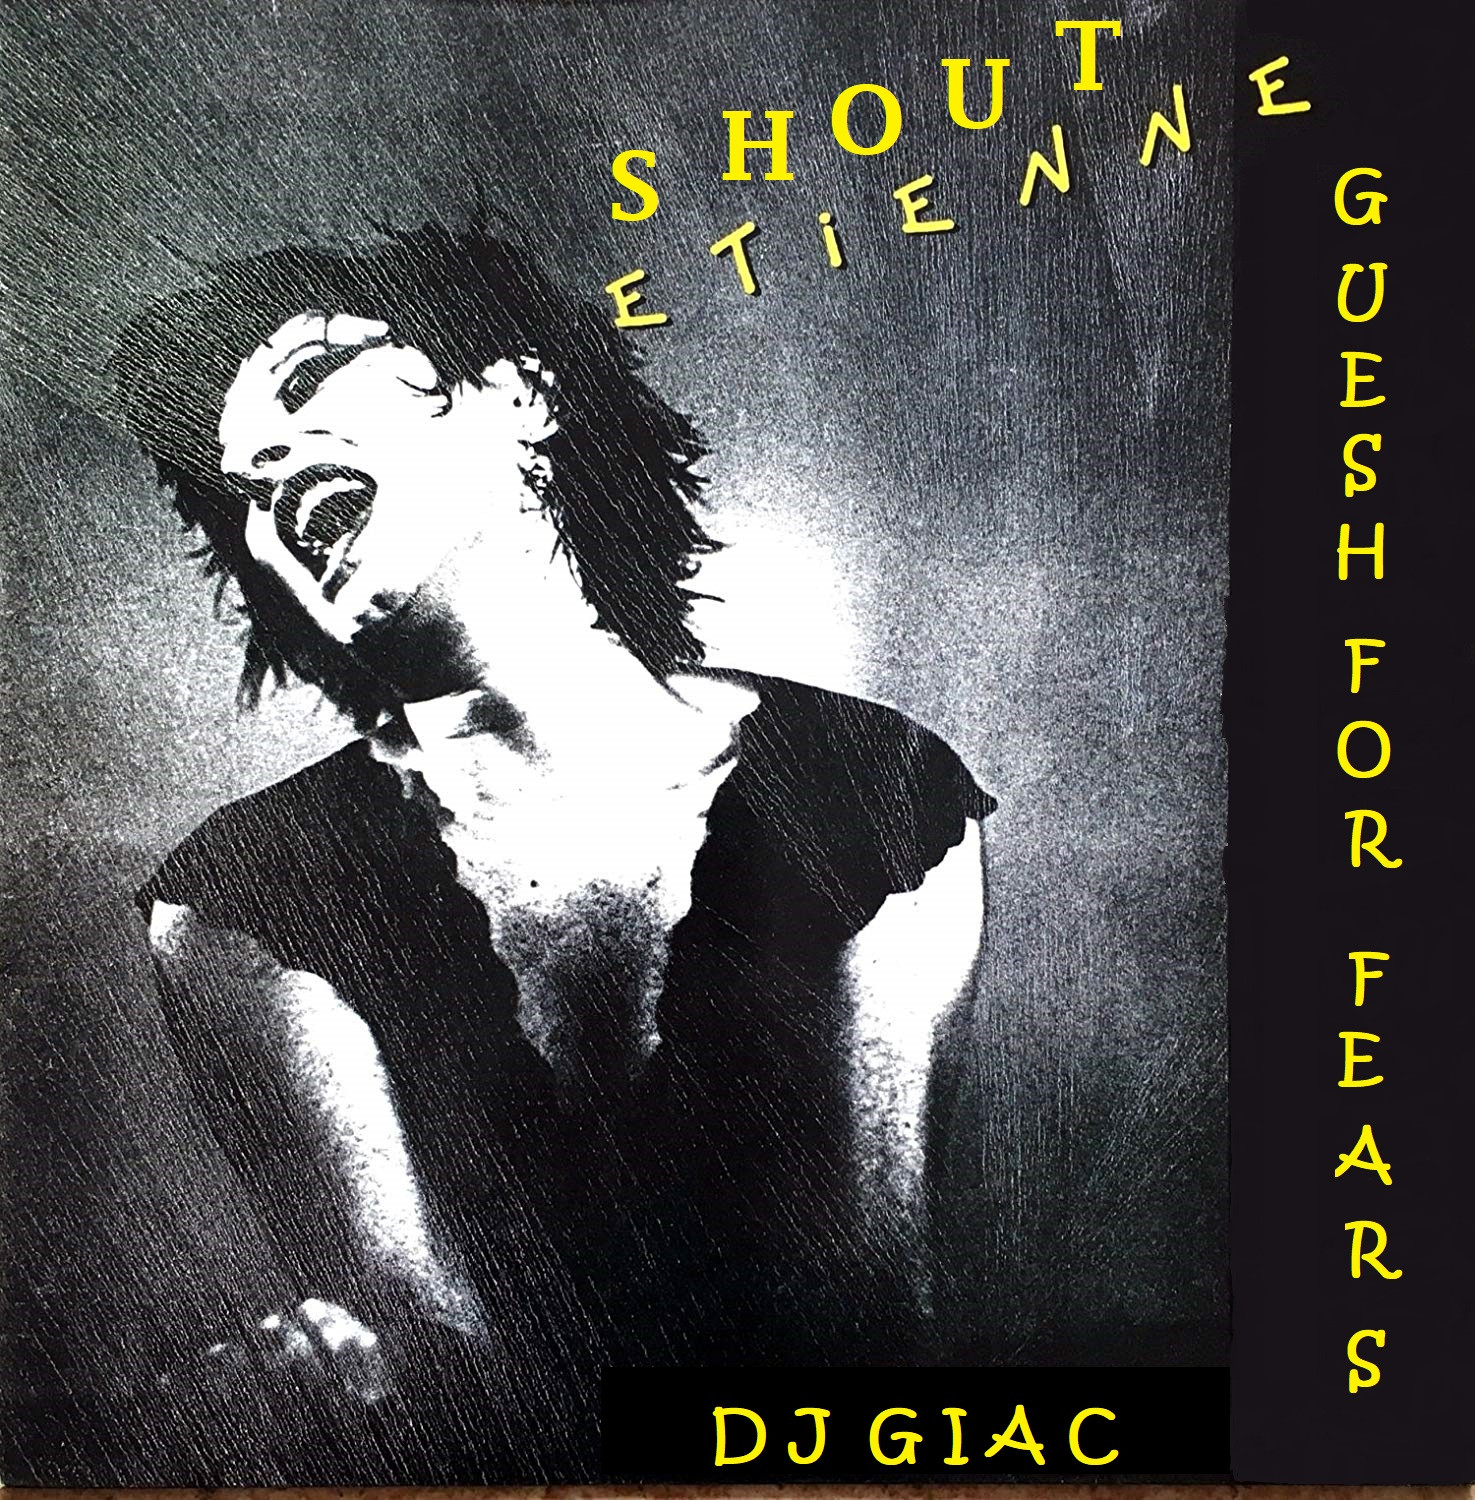 Tears For Fears vs Guesch Patti - Shout Etienne (US Remix) (2019)